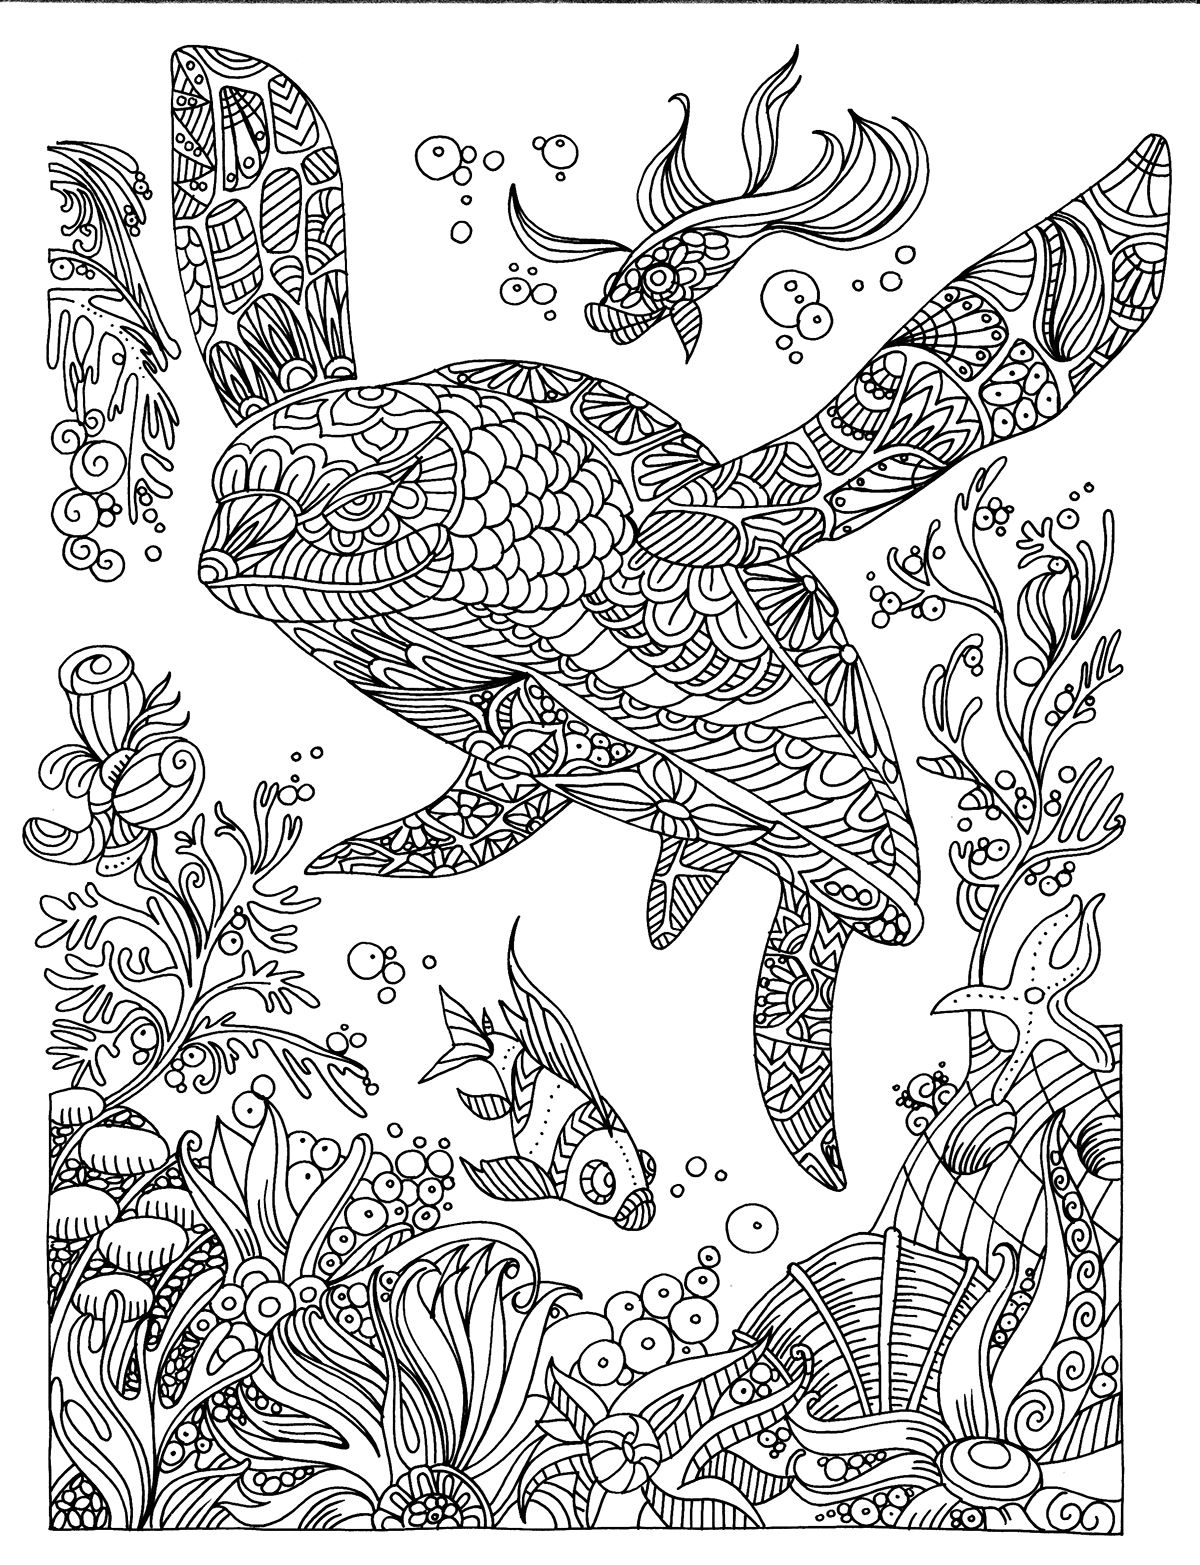 - Turtle Illustration Colouring Page. Mandalas. Zentangle. Relaxing